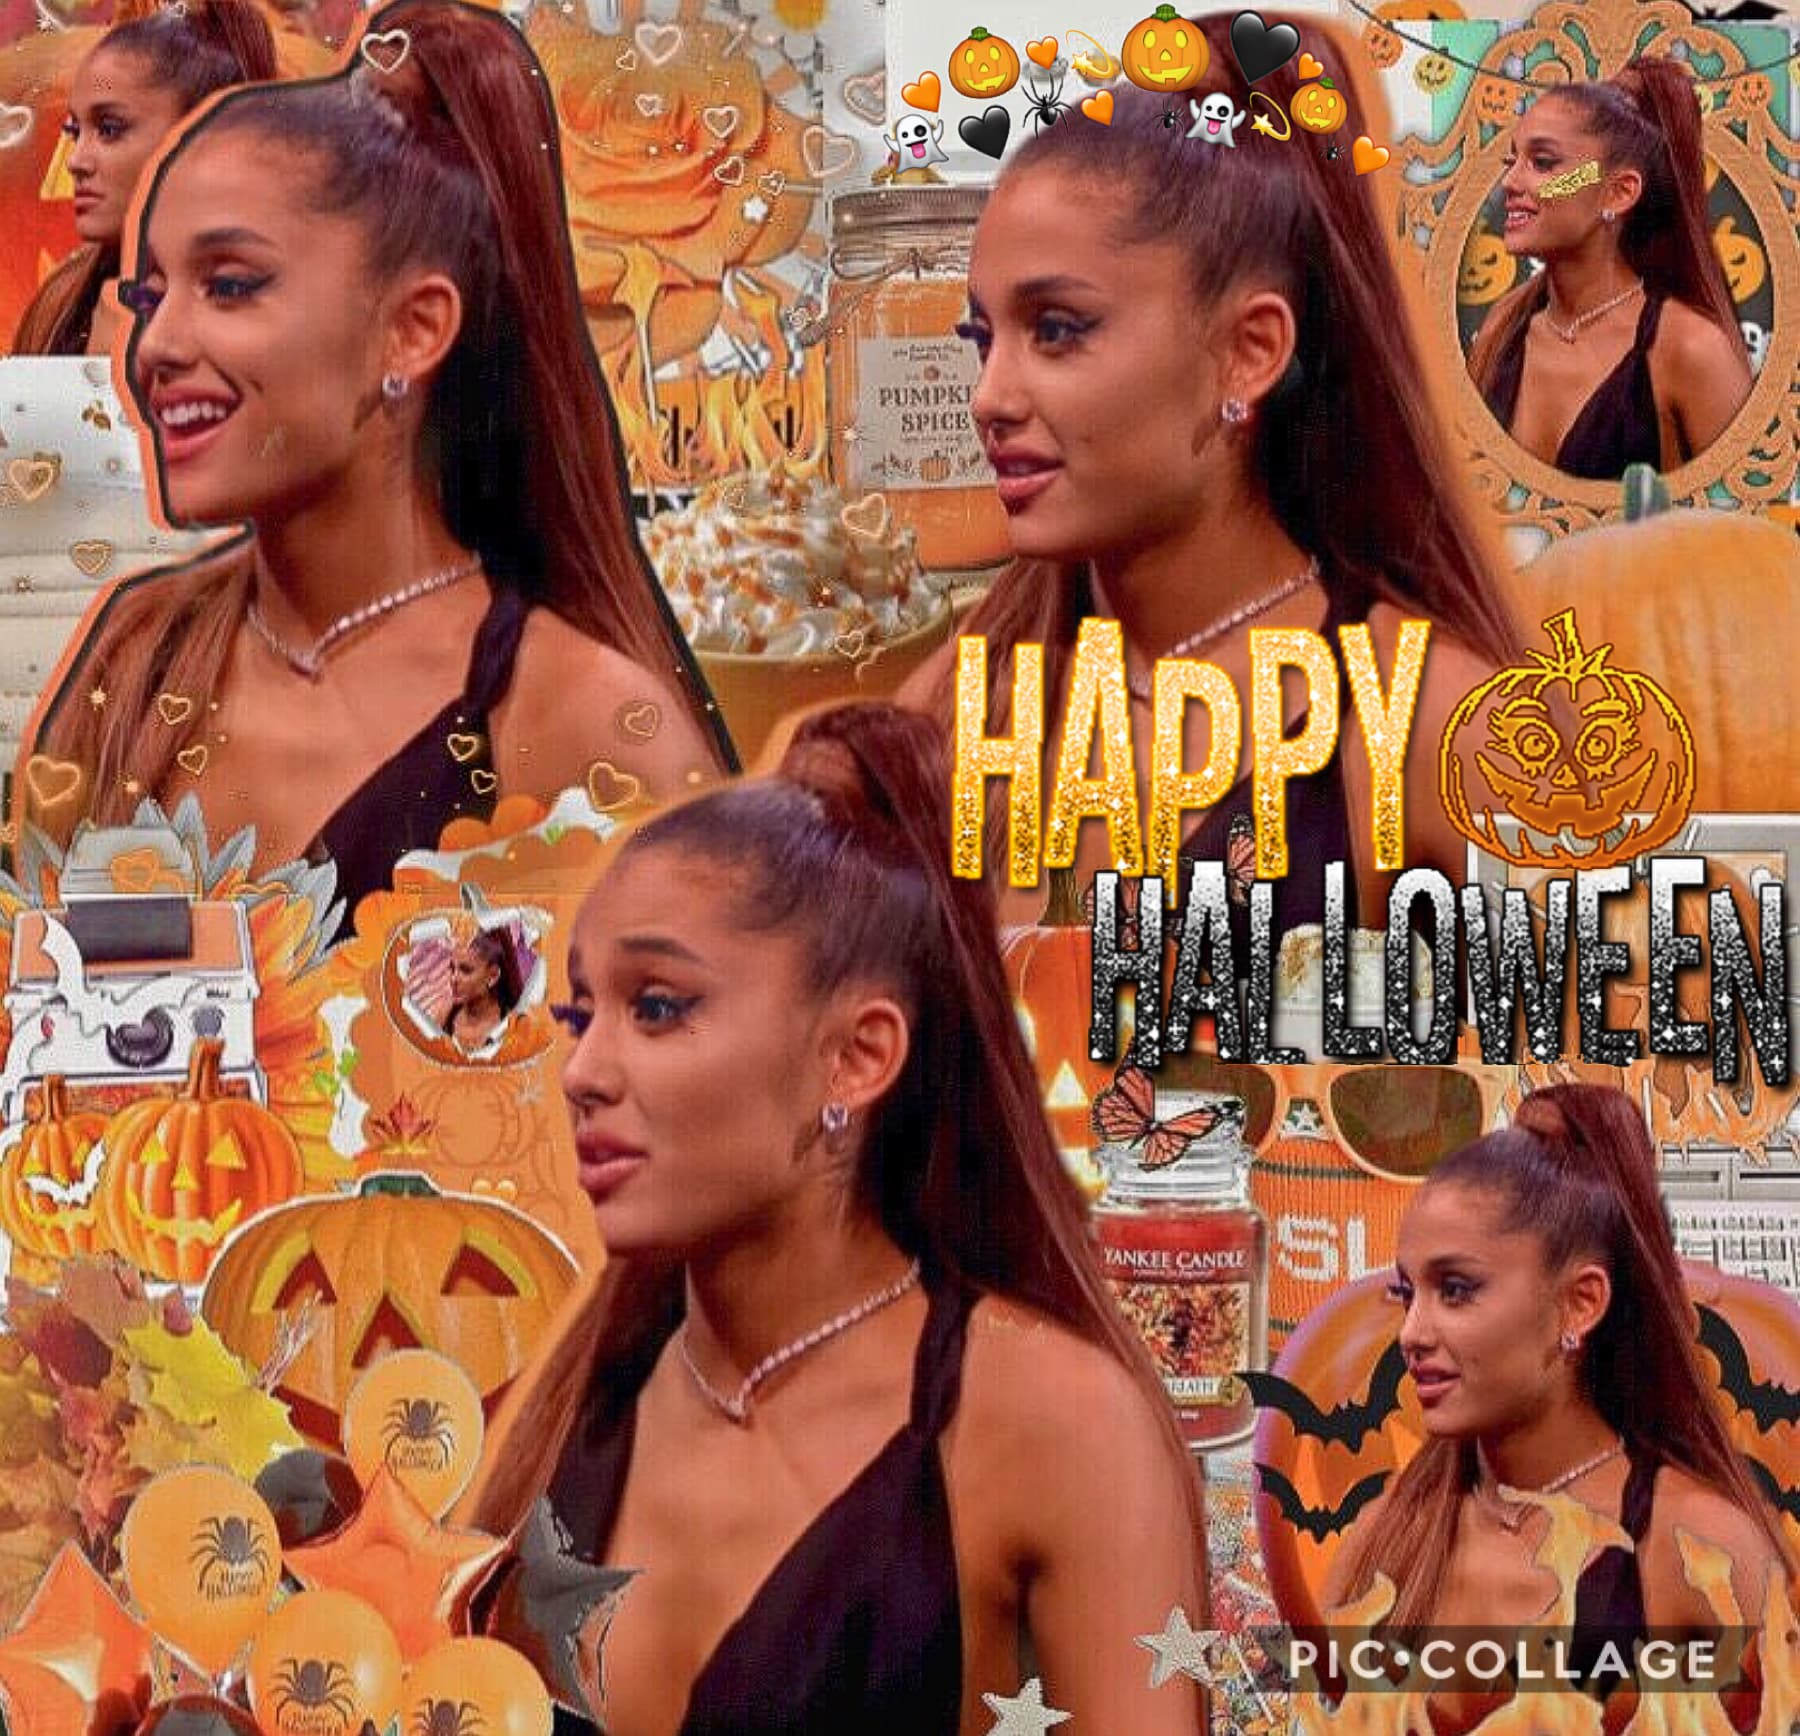 Hiiiii, I know I dissapered for a bit but I'm back!!  I'm not dead so don't worry I was meant to post this in Halloween but I've beeeeeeeeeen so busy like sooo that I have forgotten but here it is happy late late Halloween!! Here is my new theme